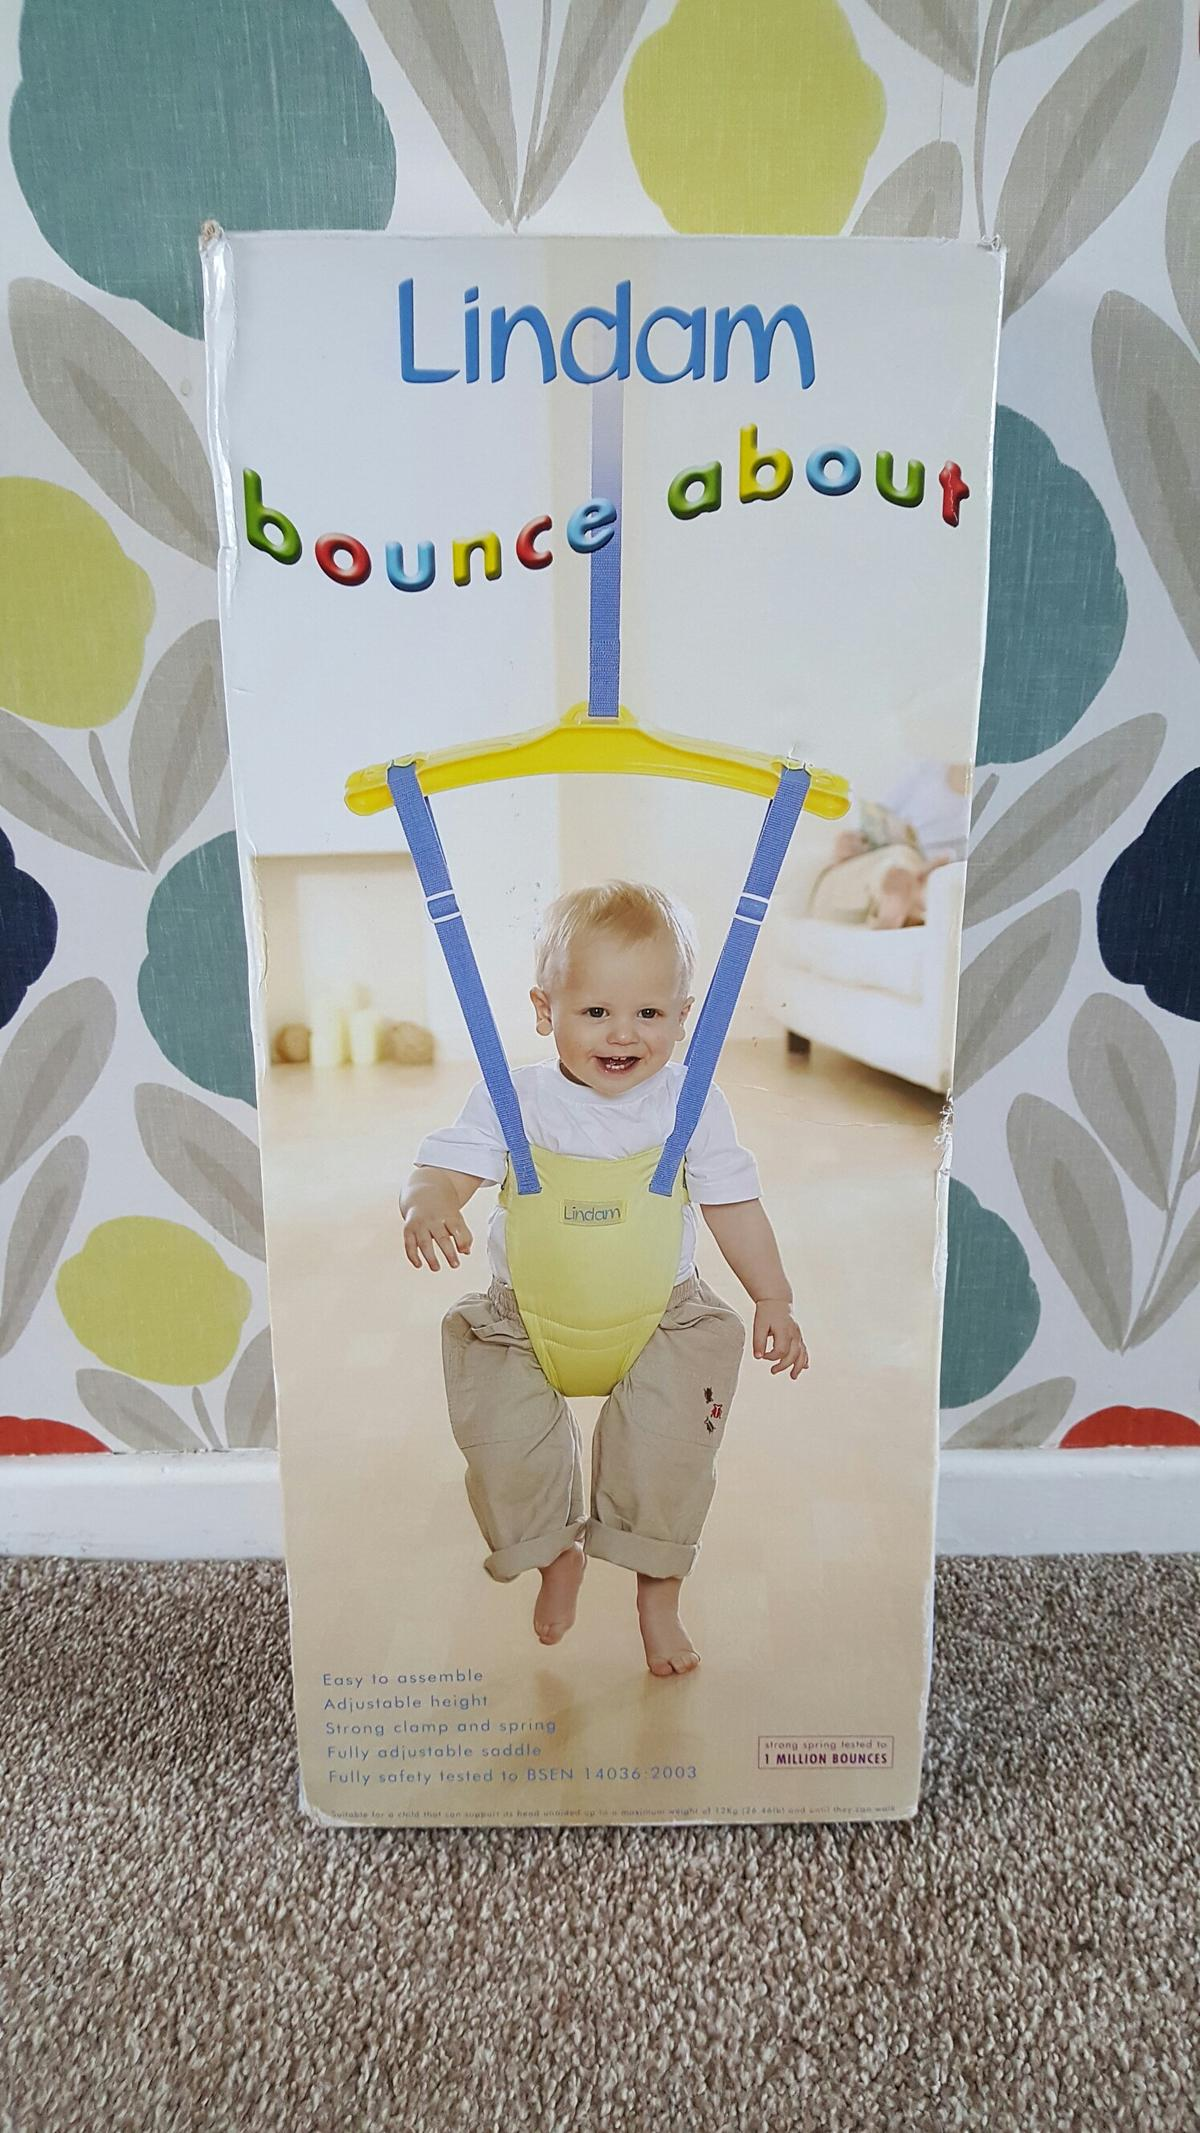 2f6f583d2 Lindam Bounce About Baby Door Bouncer Jumper in ST5-Lyme for £5.00 ...